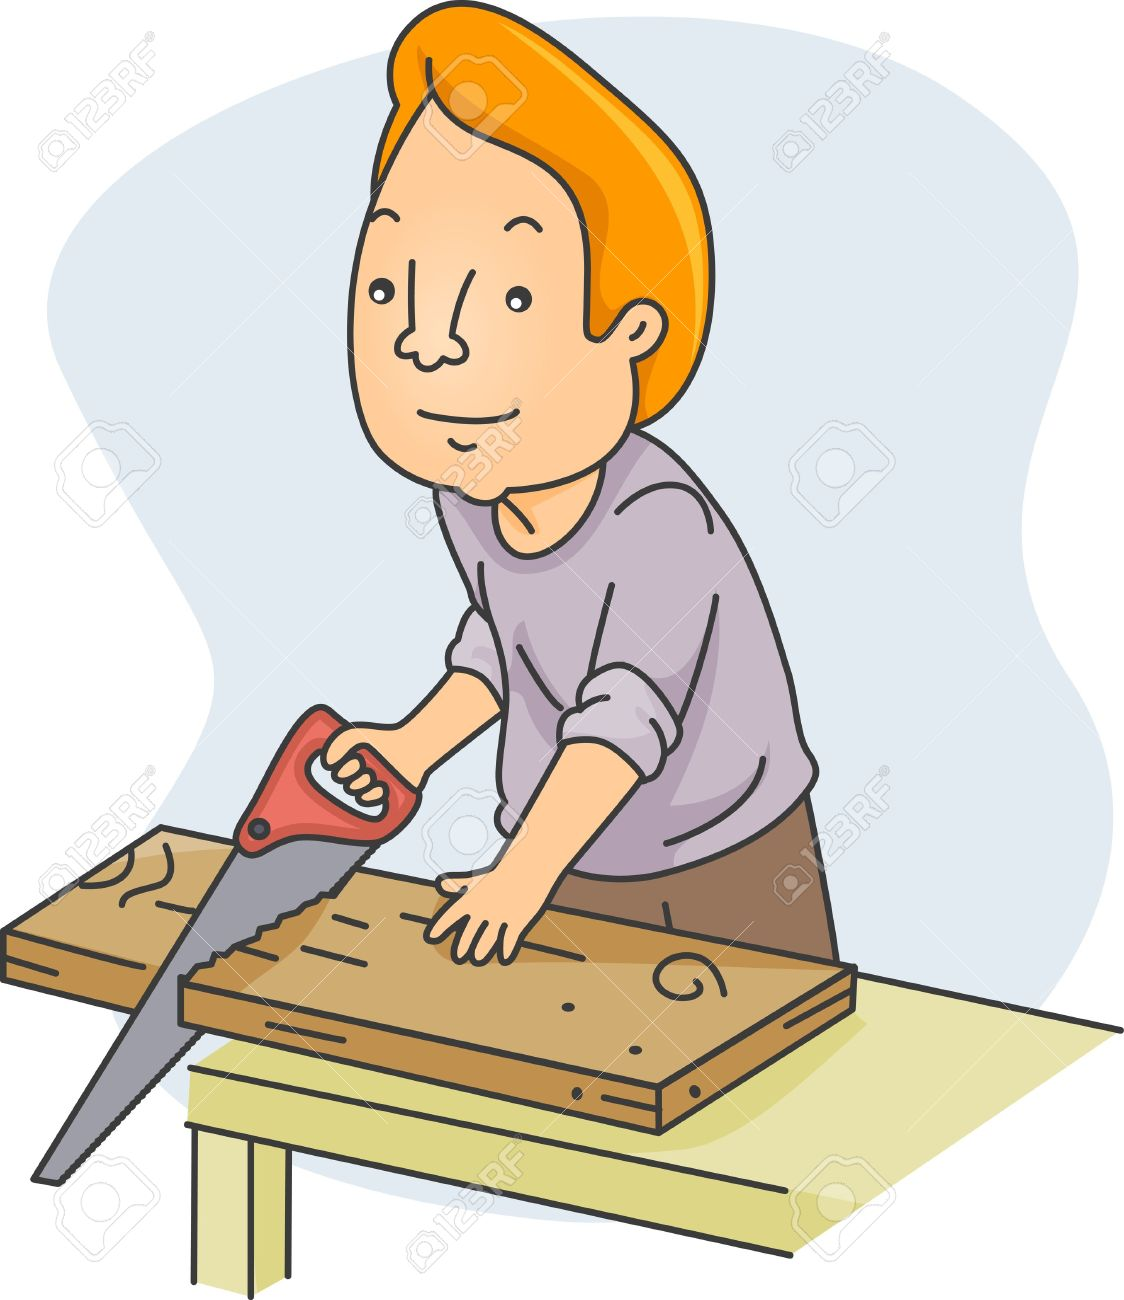 Illustration Of A Man Sawing Wood Stock Photo, Picture And Royalty.